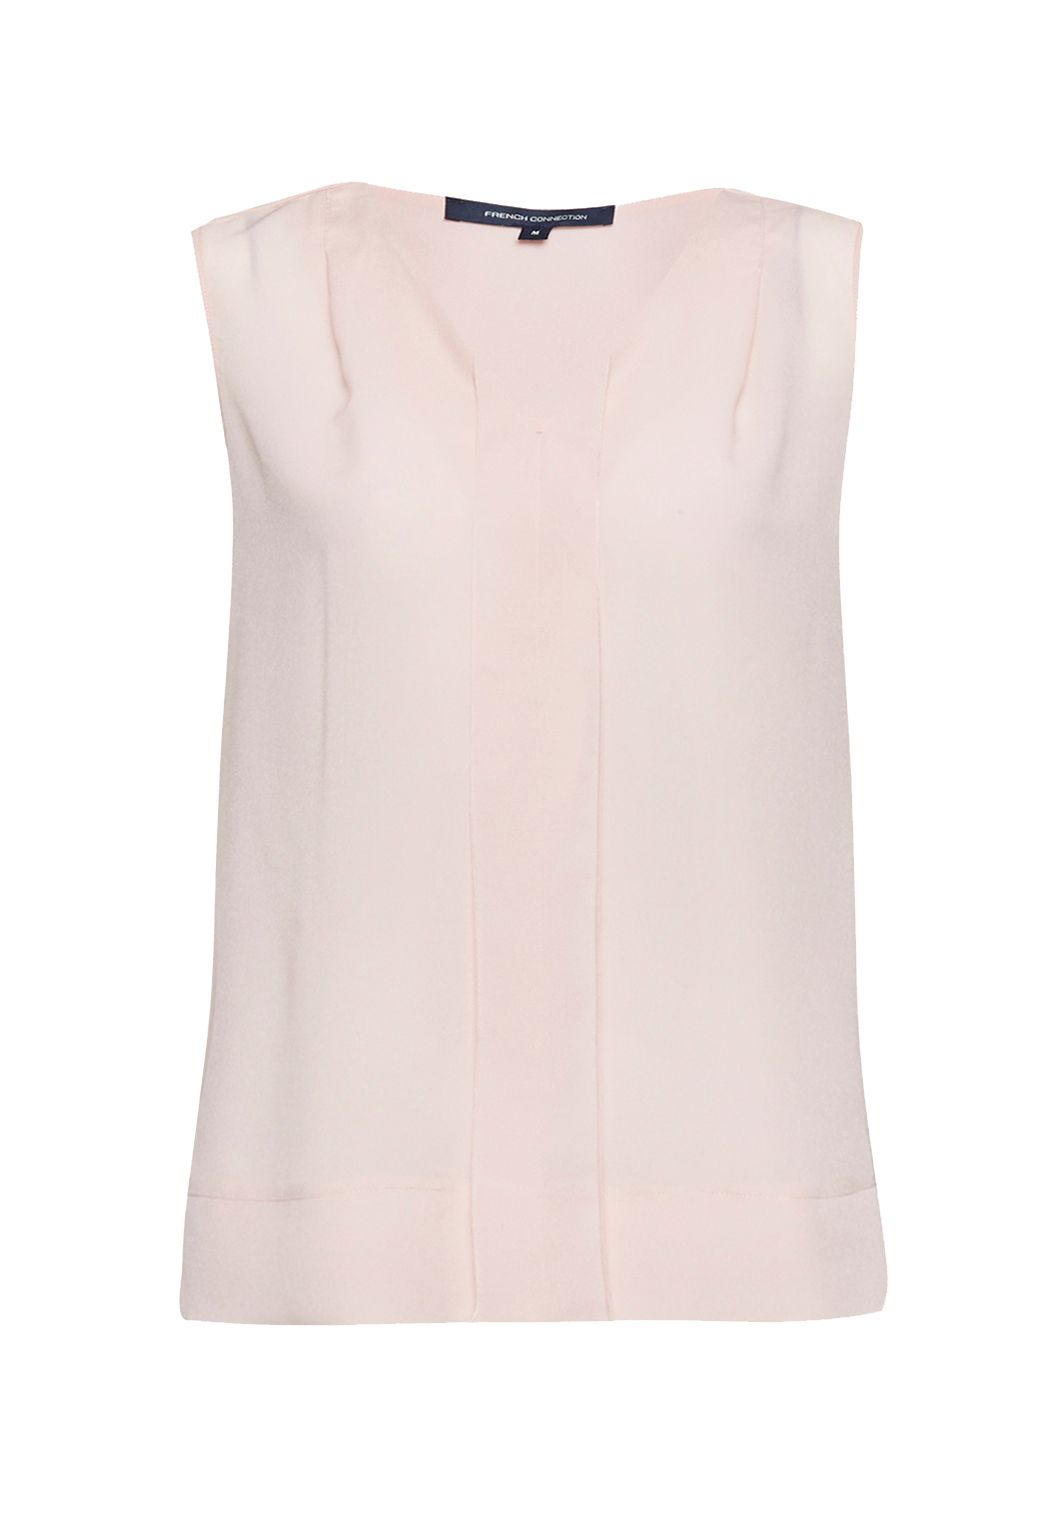 French Connection Polly Plains V Neck Top, Pinkest Blossom